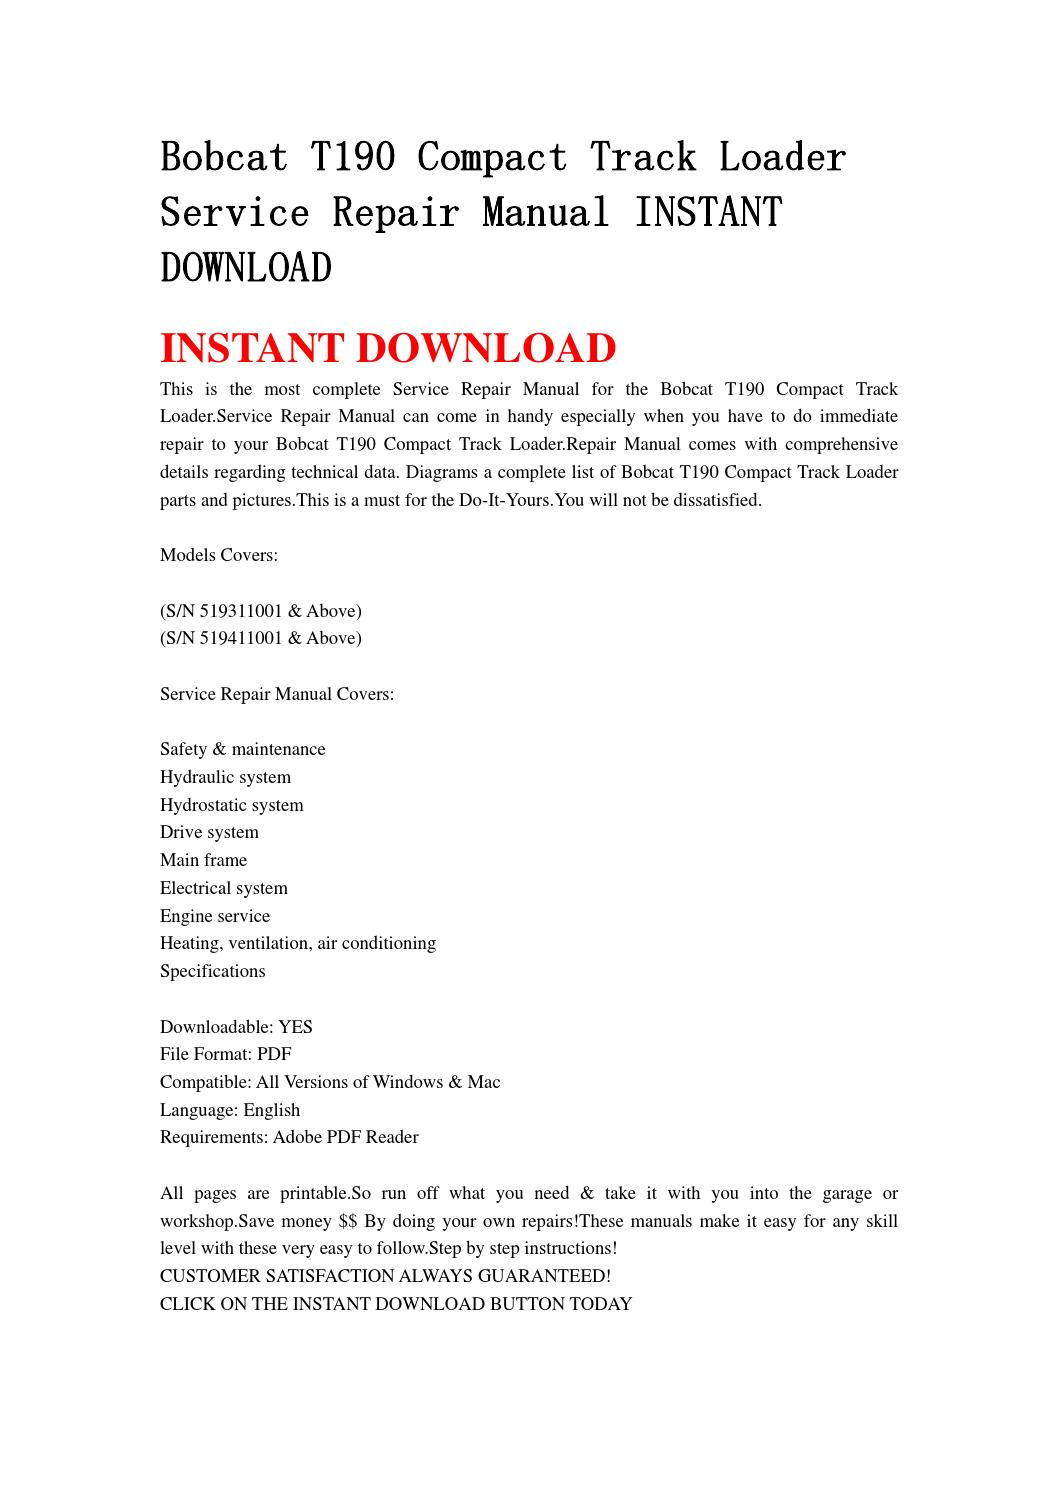 hight resolution of bobcat t190 compact track loader service repair manual instant download0